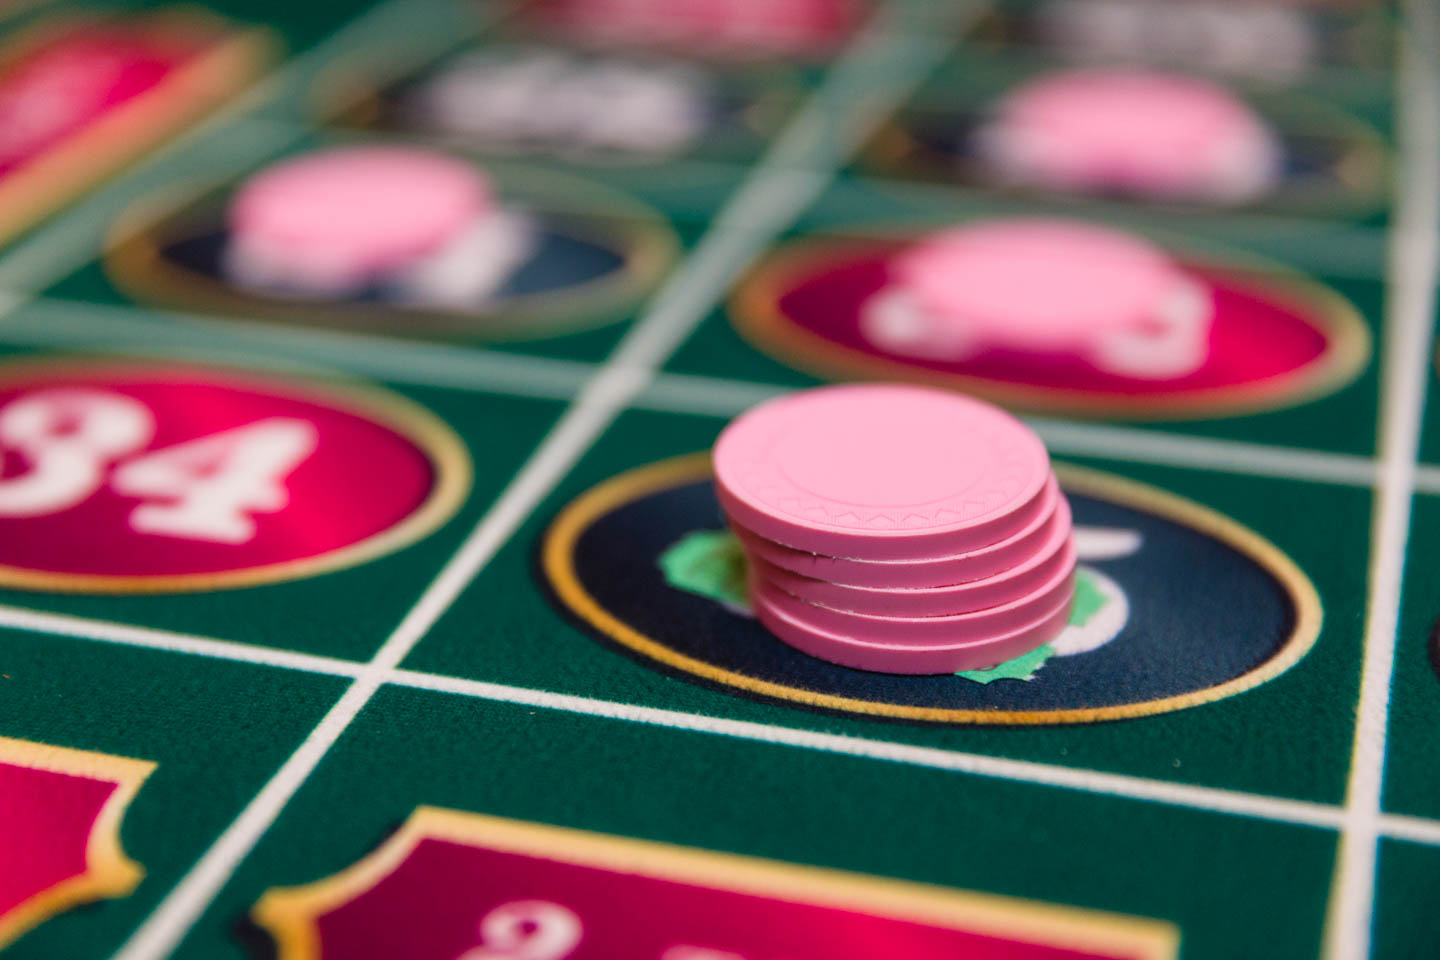 Chips on the roulette table